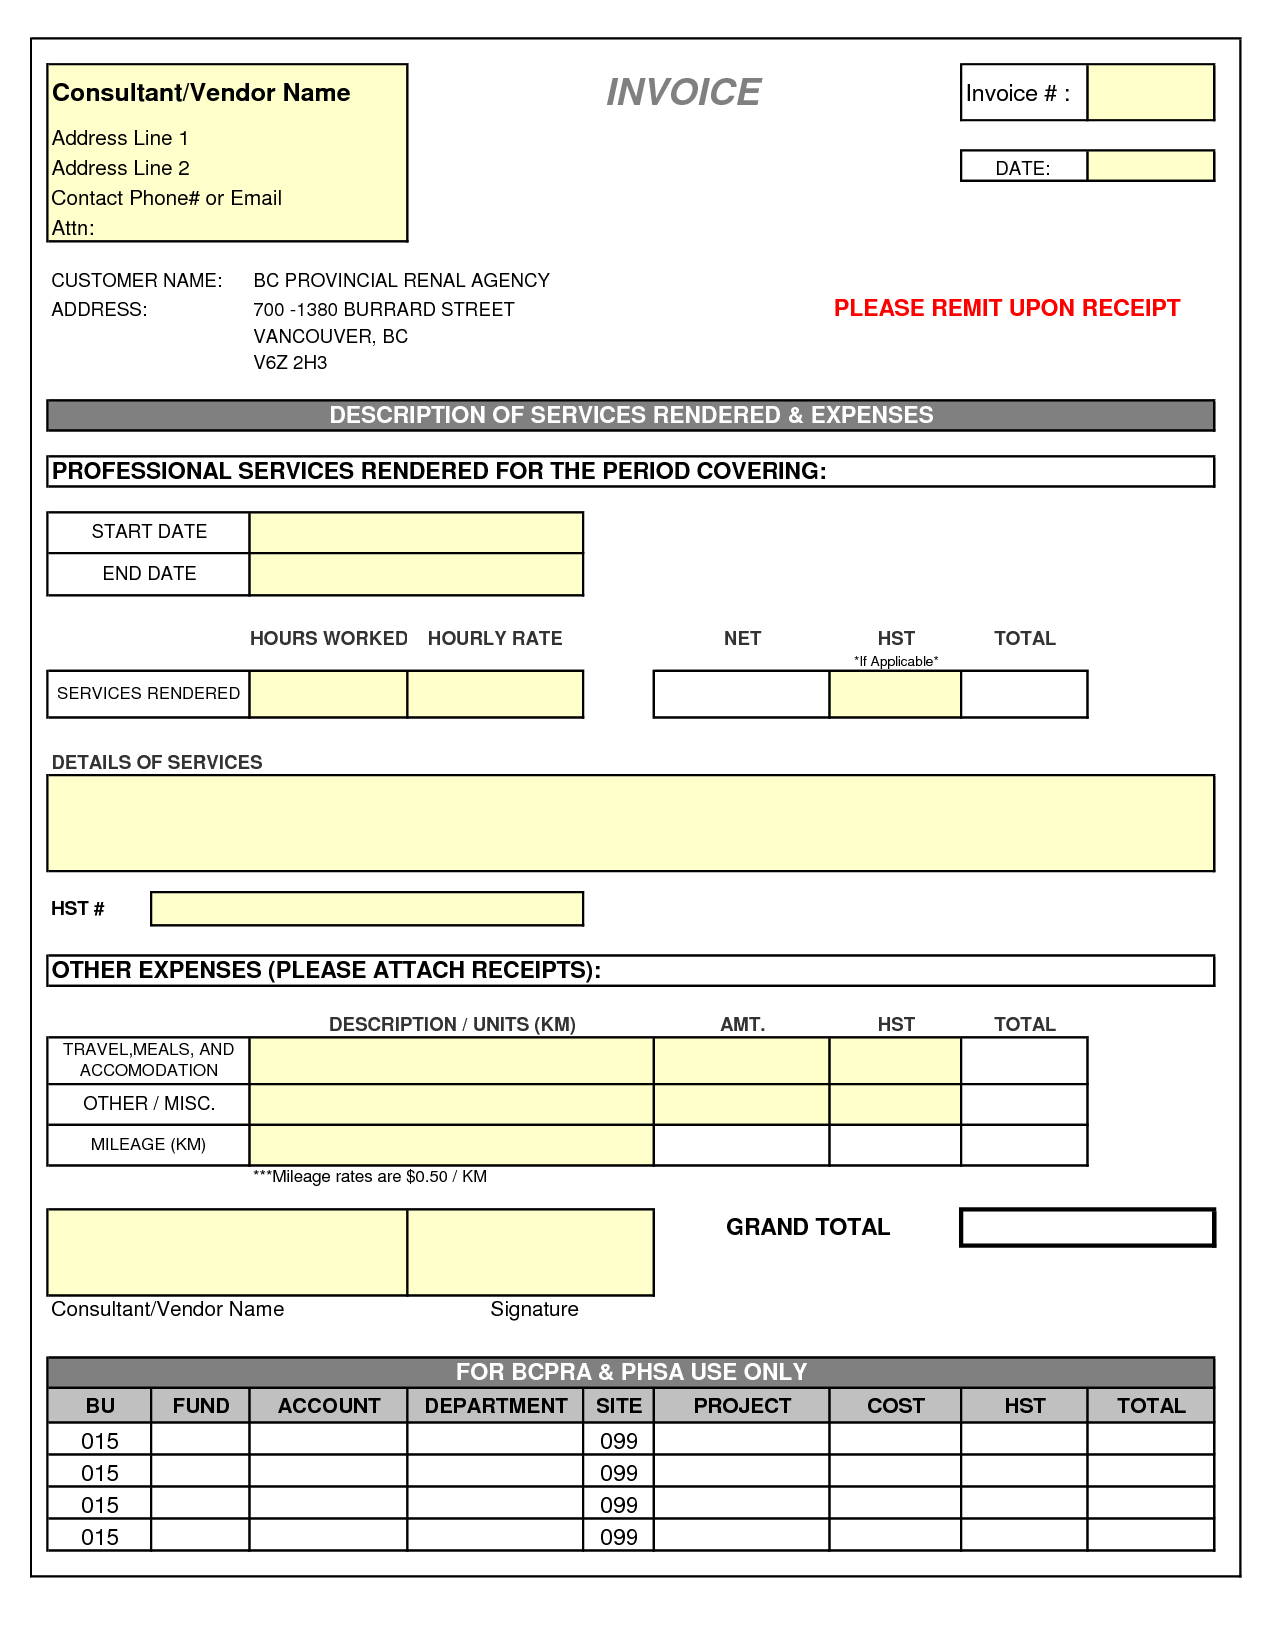 Invoice Template Google Doc Ideas Contractor / Hsbcu